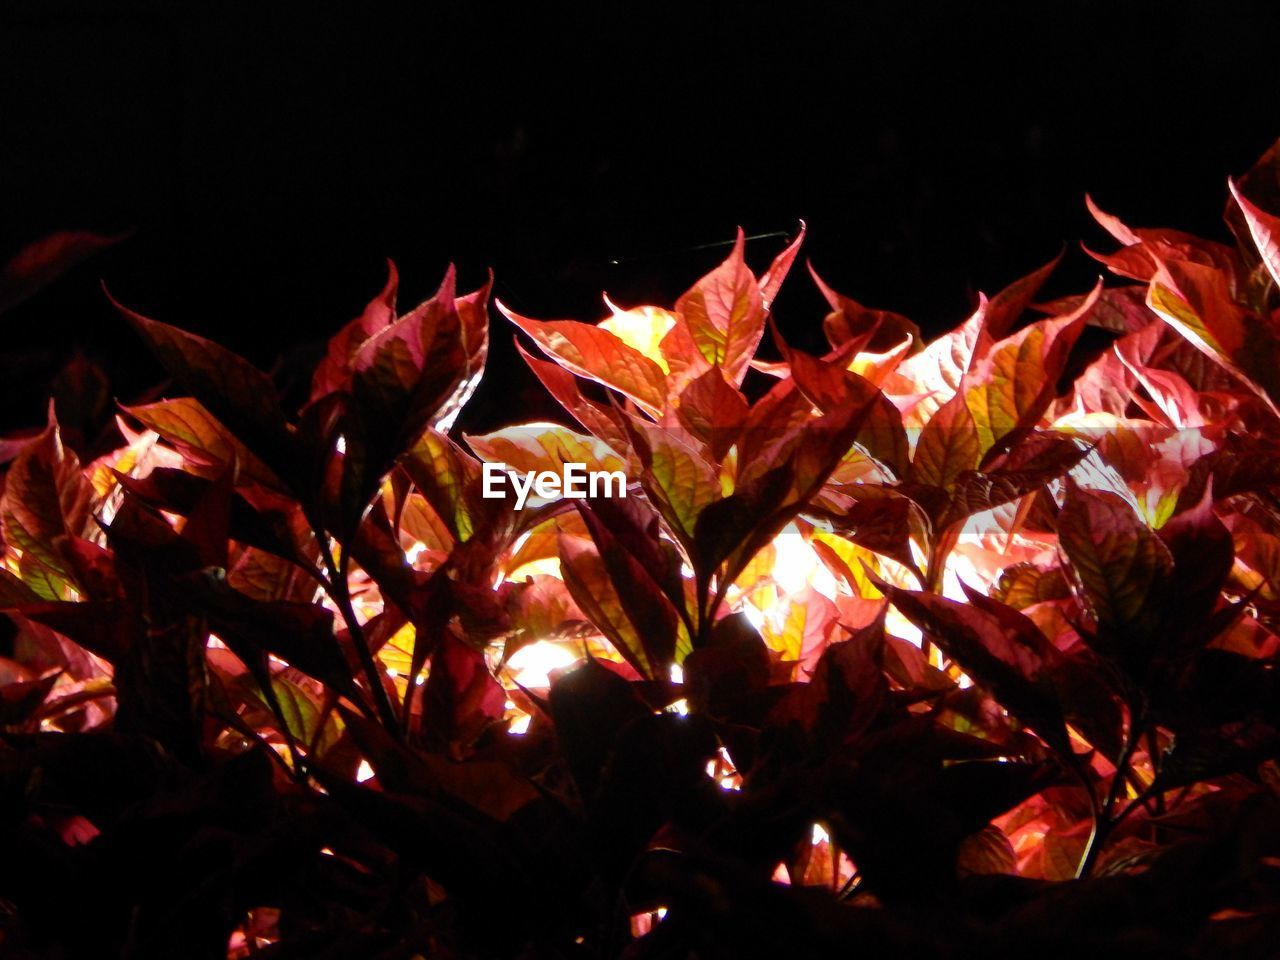 leaf, night, autumn, no people, change, outdoors, close-up, red, maple leaf, nature, beauty in nature, maple